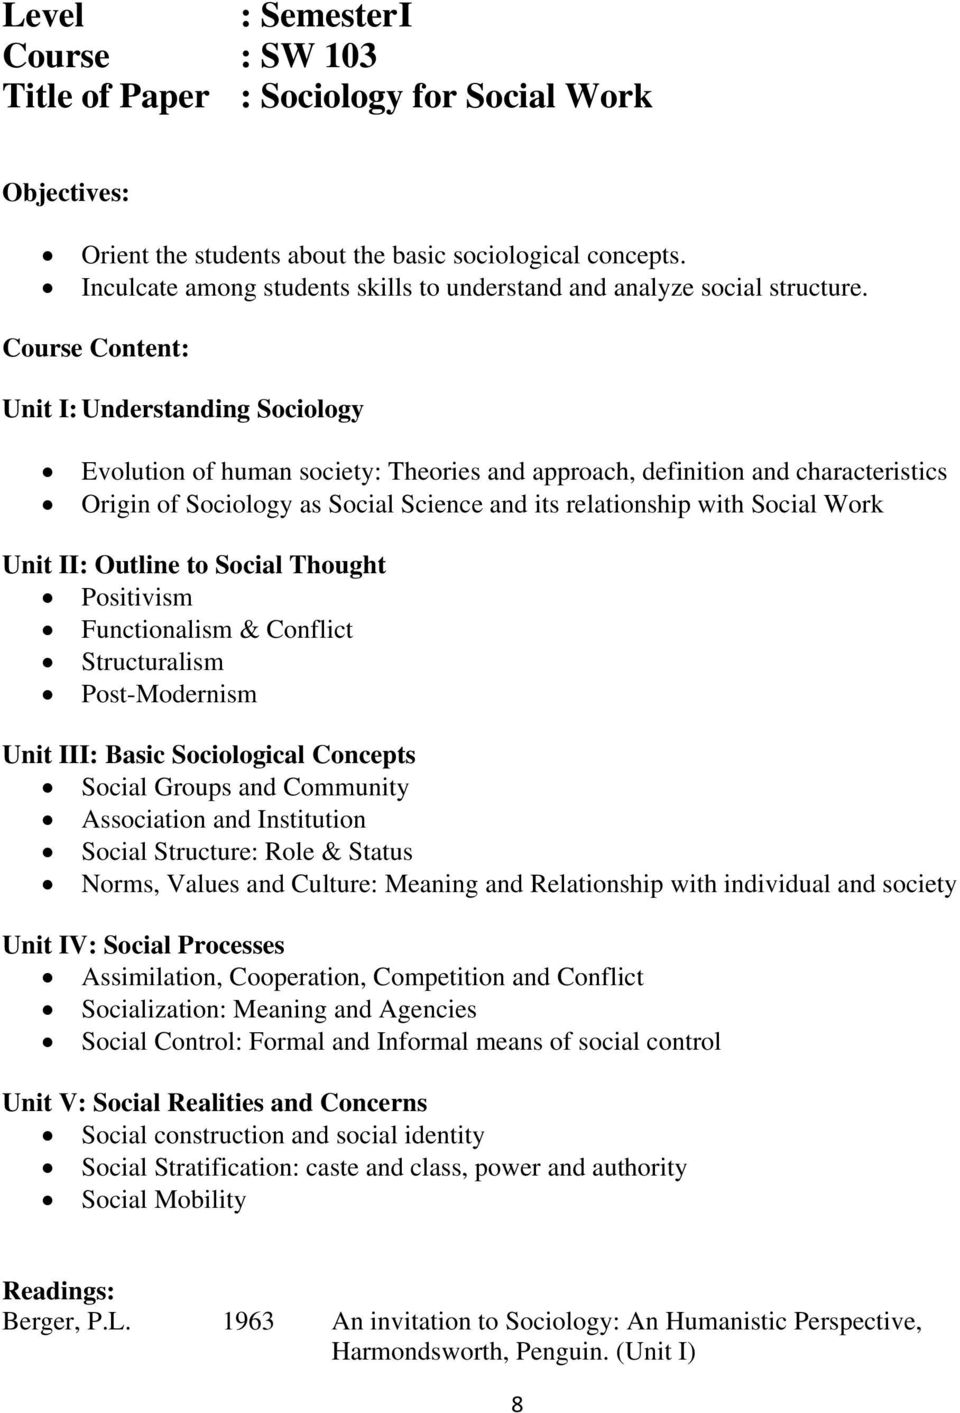 Course Content: Unit I: Understanding Sociology Evolution of human society: Theories and approach, definition and characteristics Origin of Sociology as Social Science and its relationship with